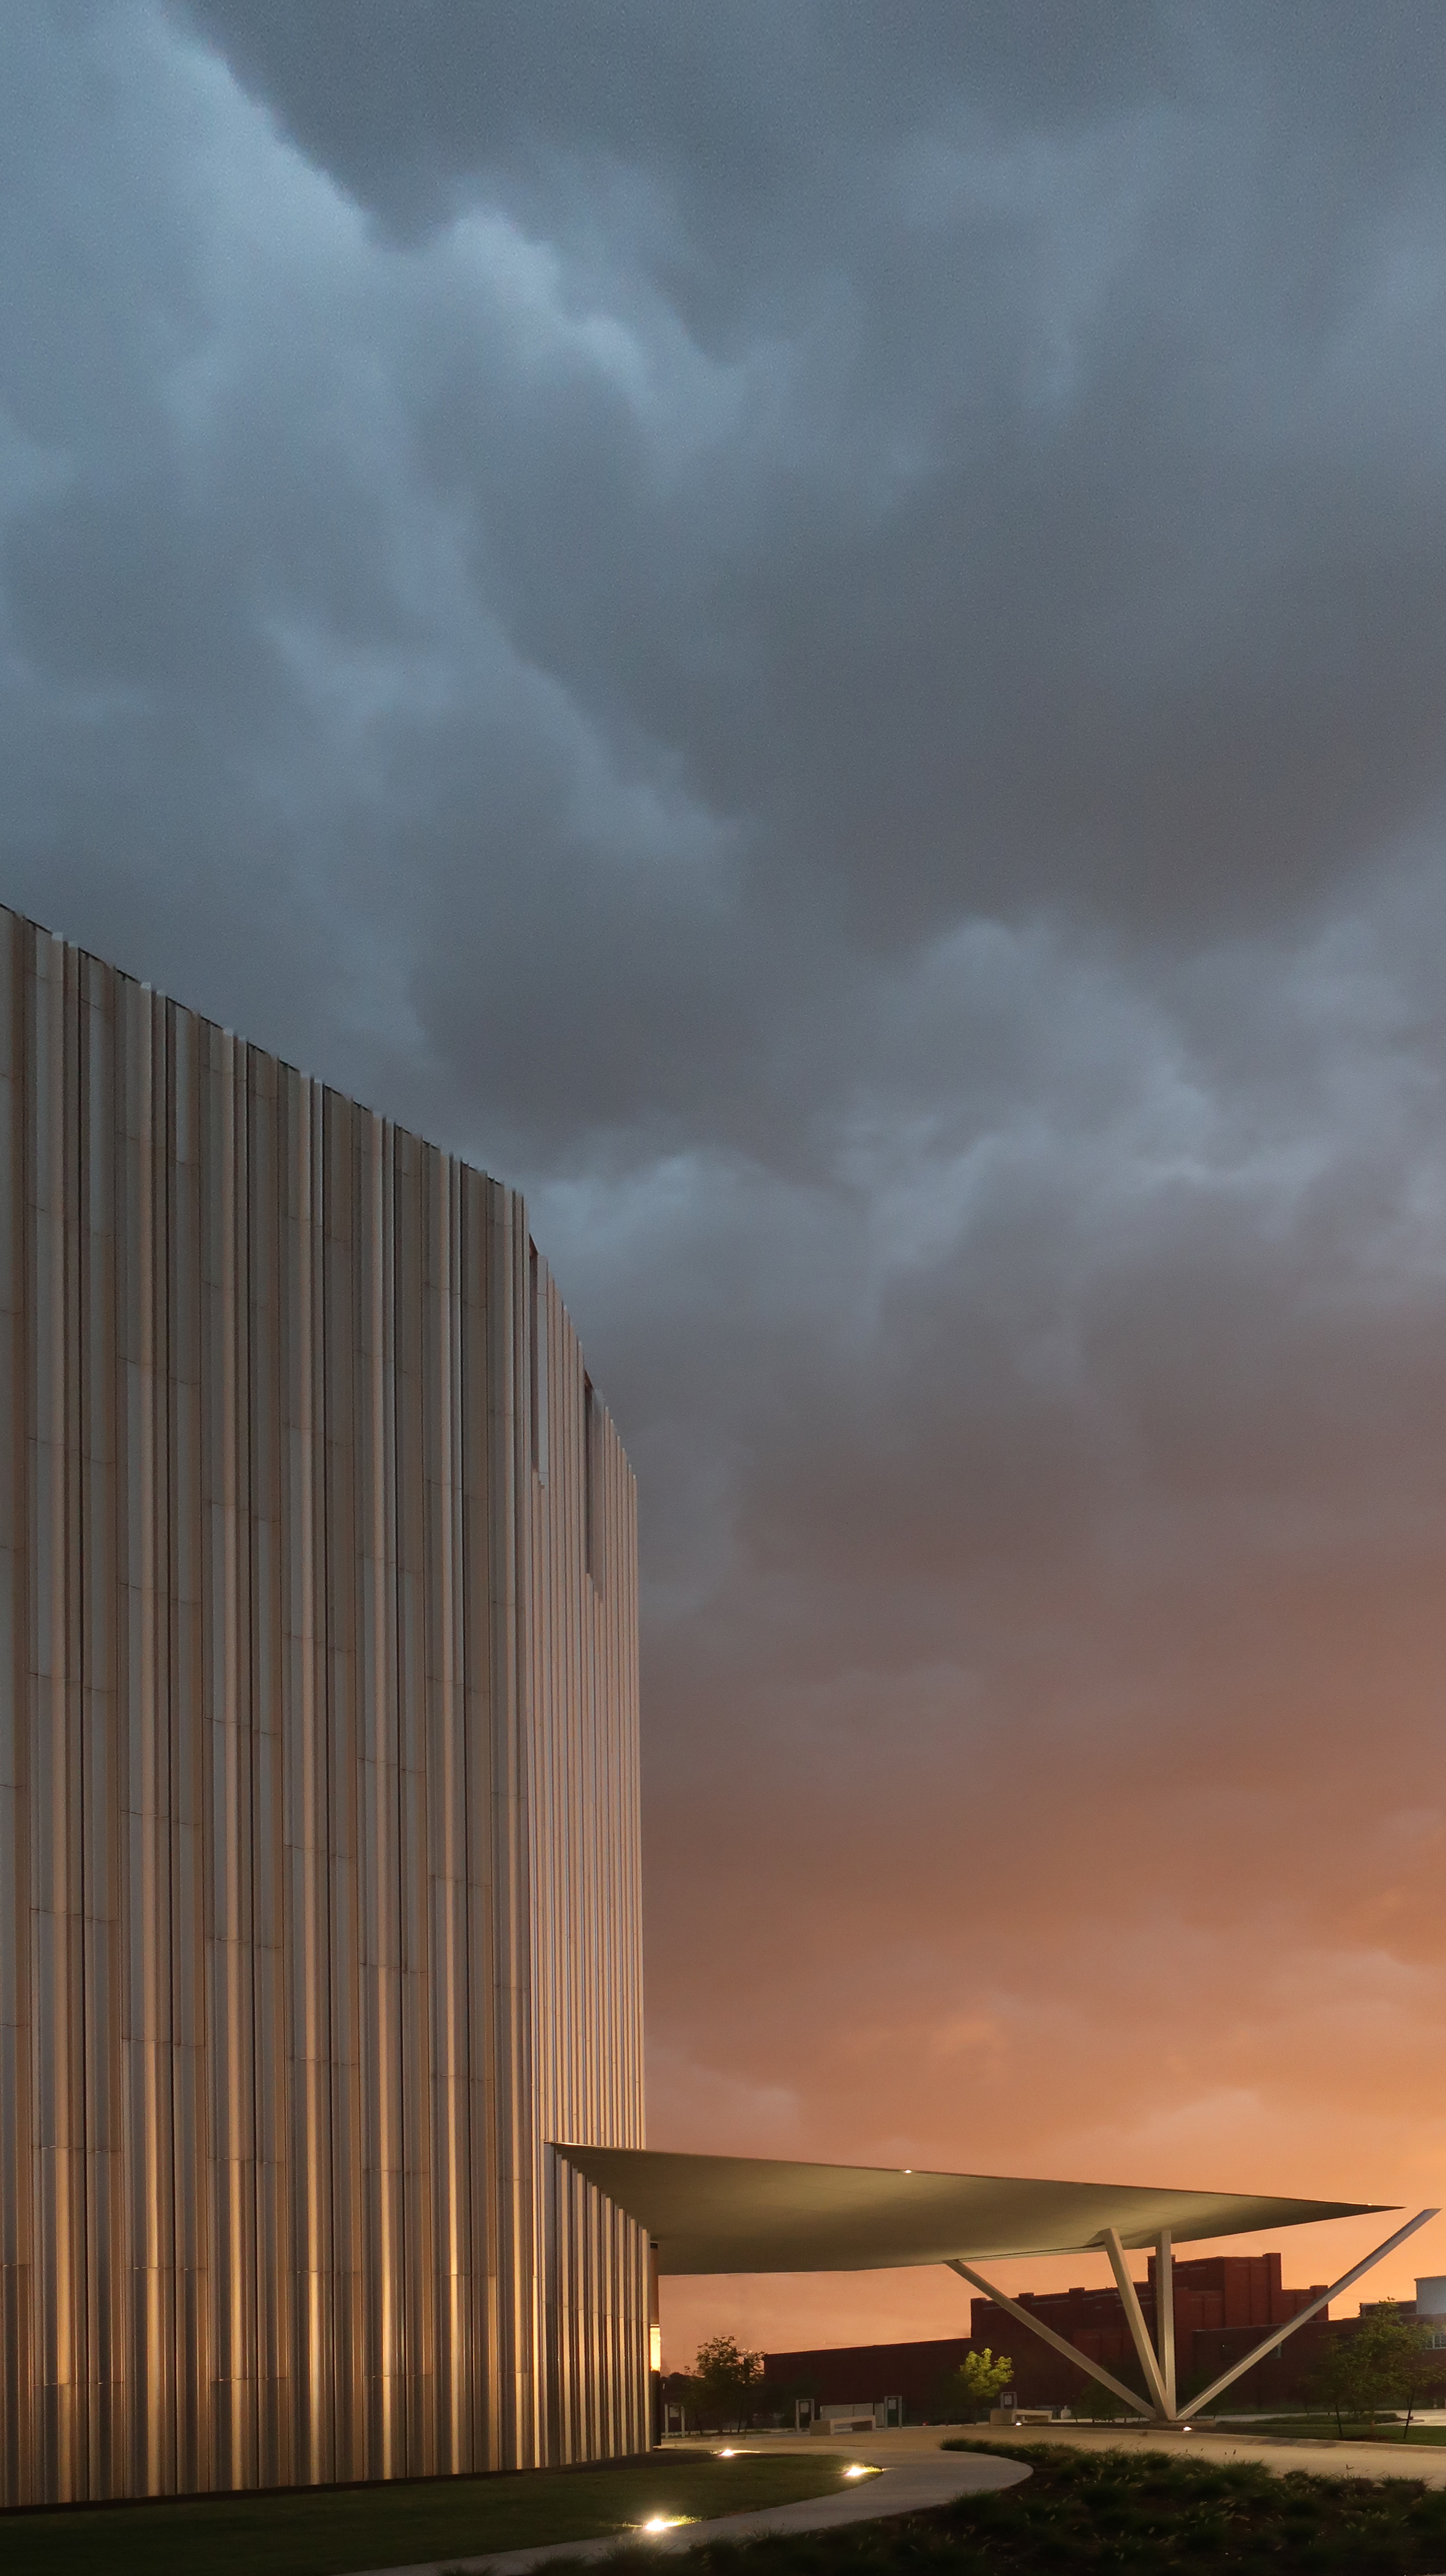 Dark clouds hang over a metal building with a metal awning